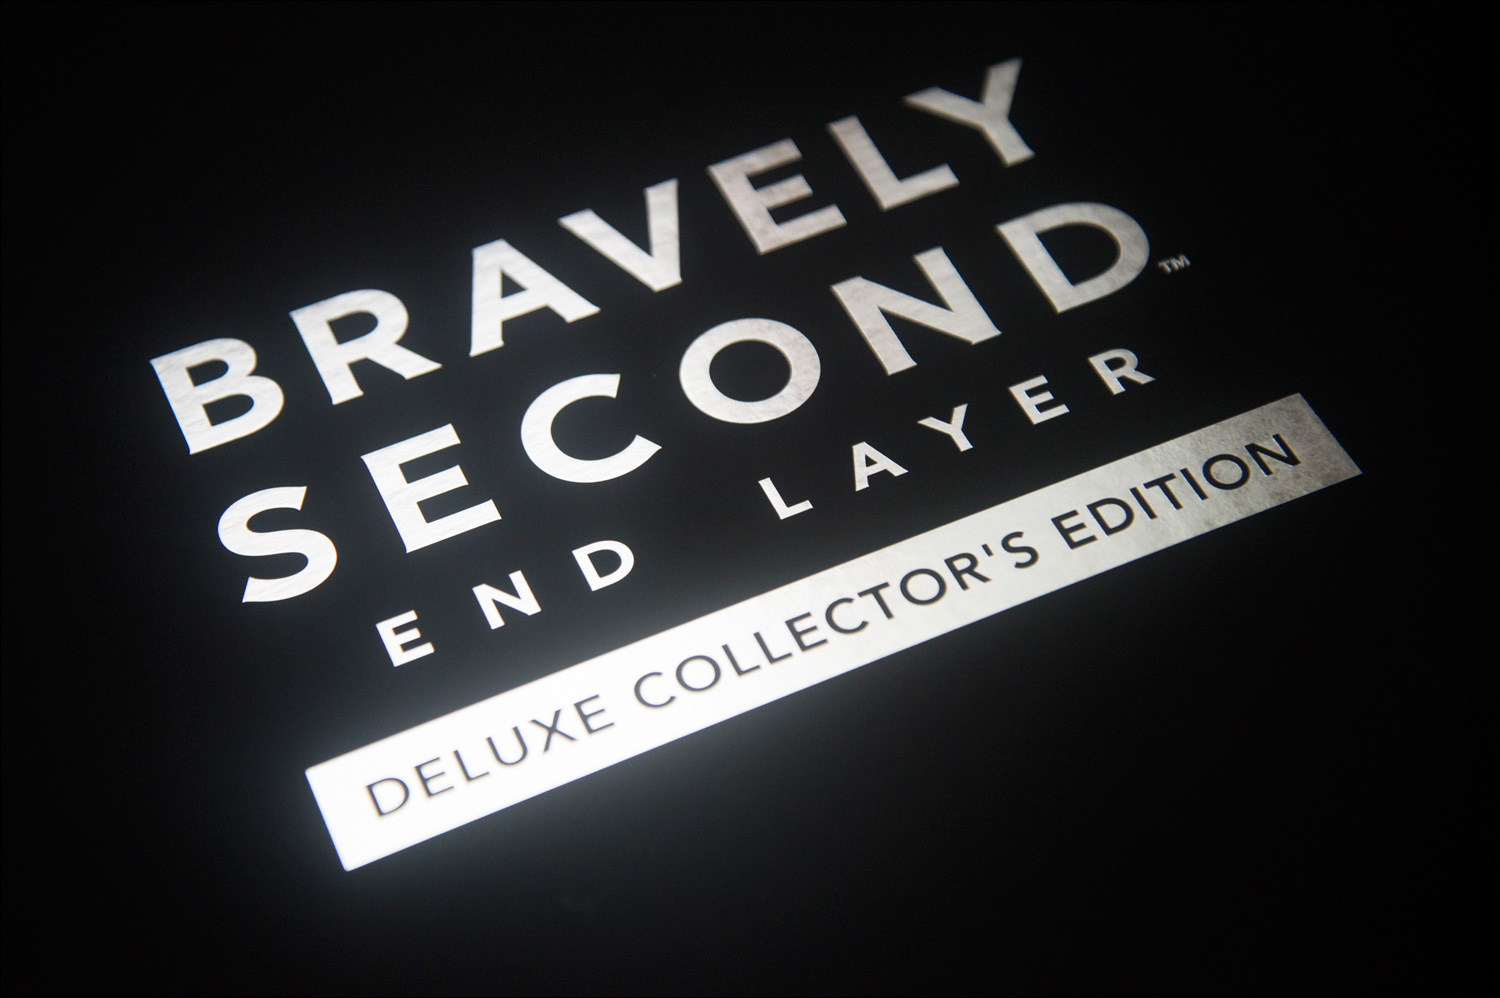 Bravely-Second-End-Layer-Deluxe-Collector's-Edition-Logo